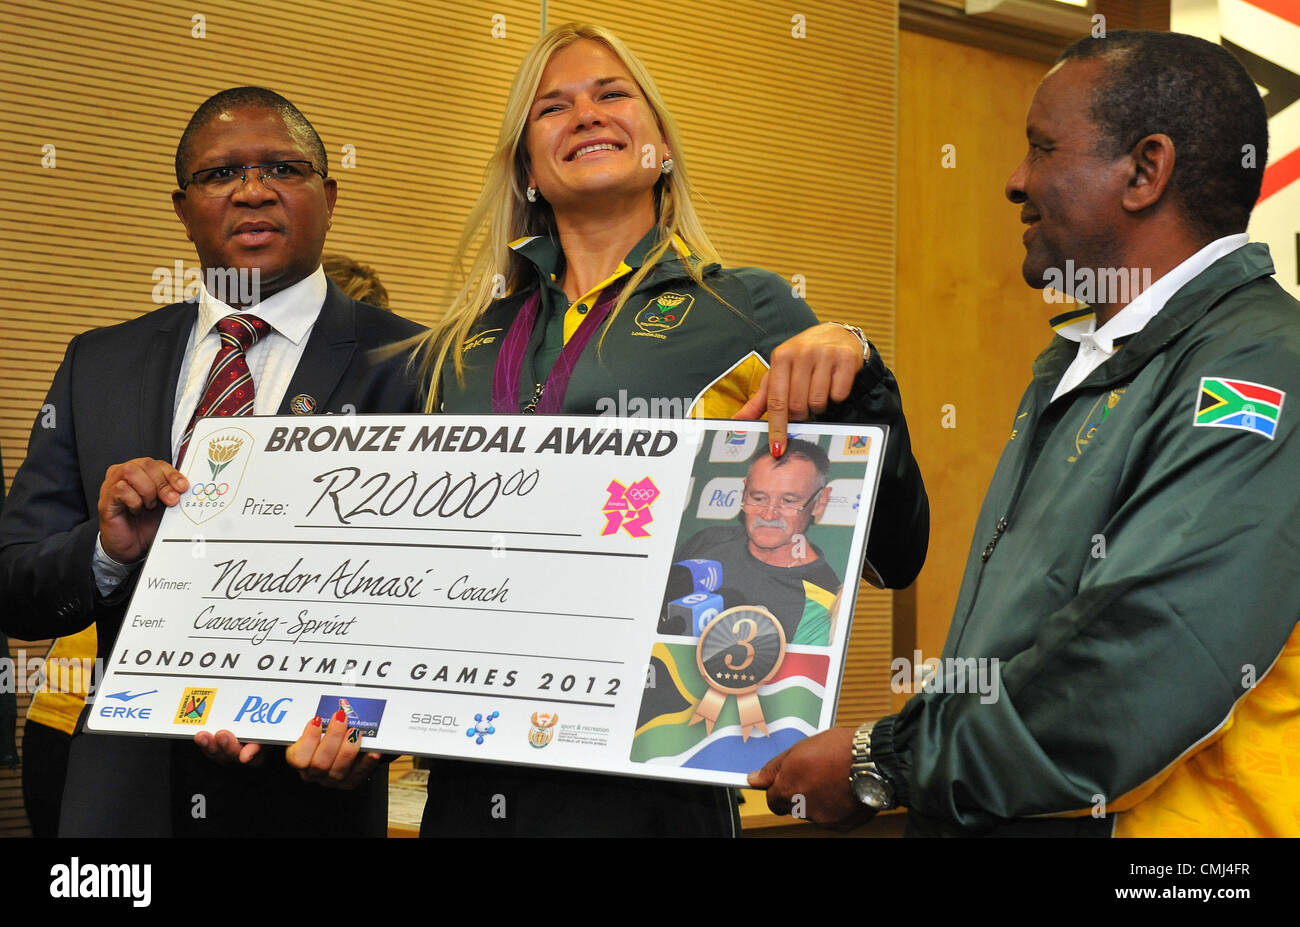 14th Aug 2012 Johannesburg, South Africa. Bridgitte Hartley collect for coach Nandor Almasi from Fikile Mdlalula - Stock Image